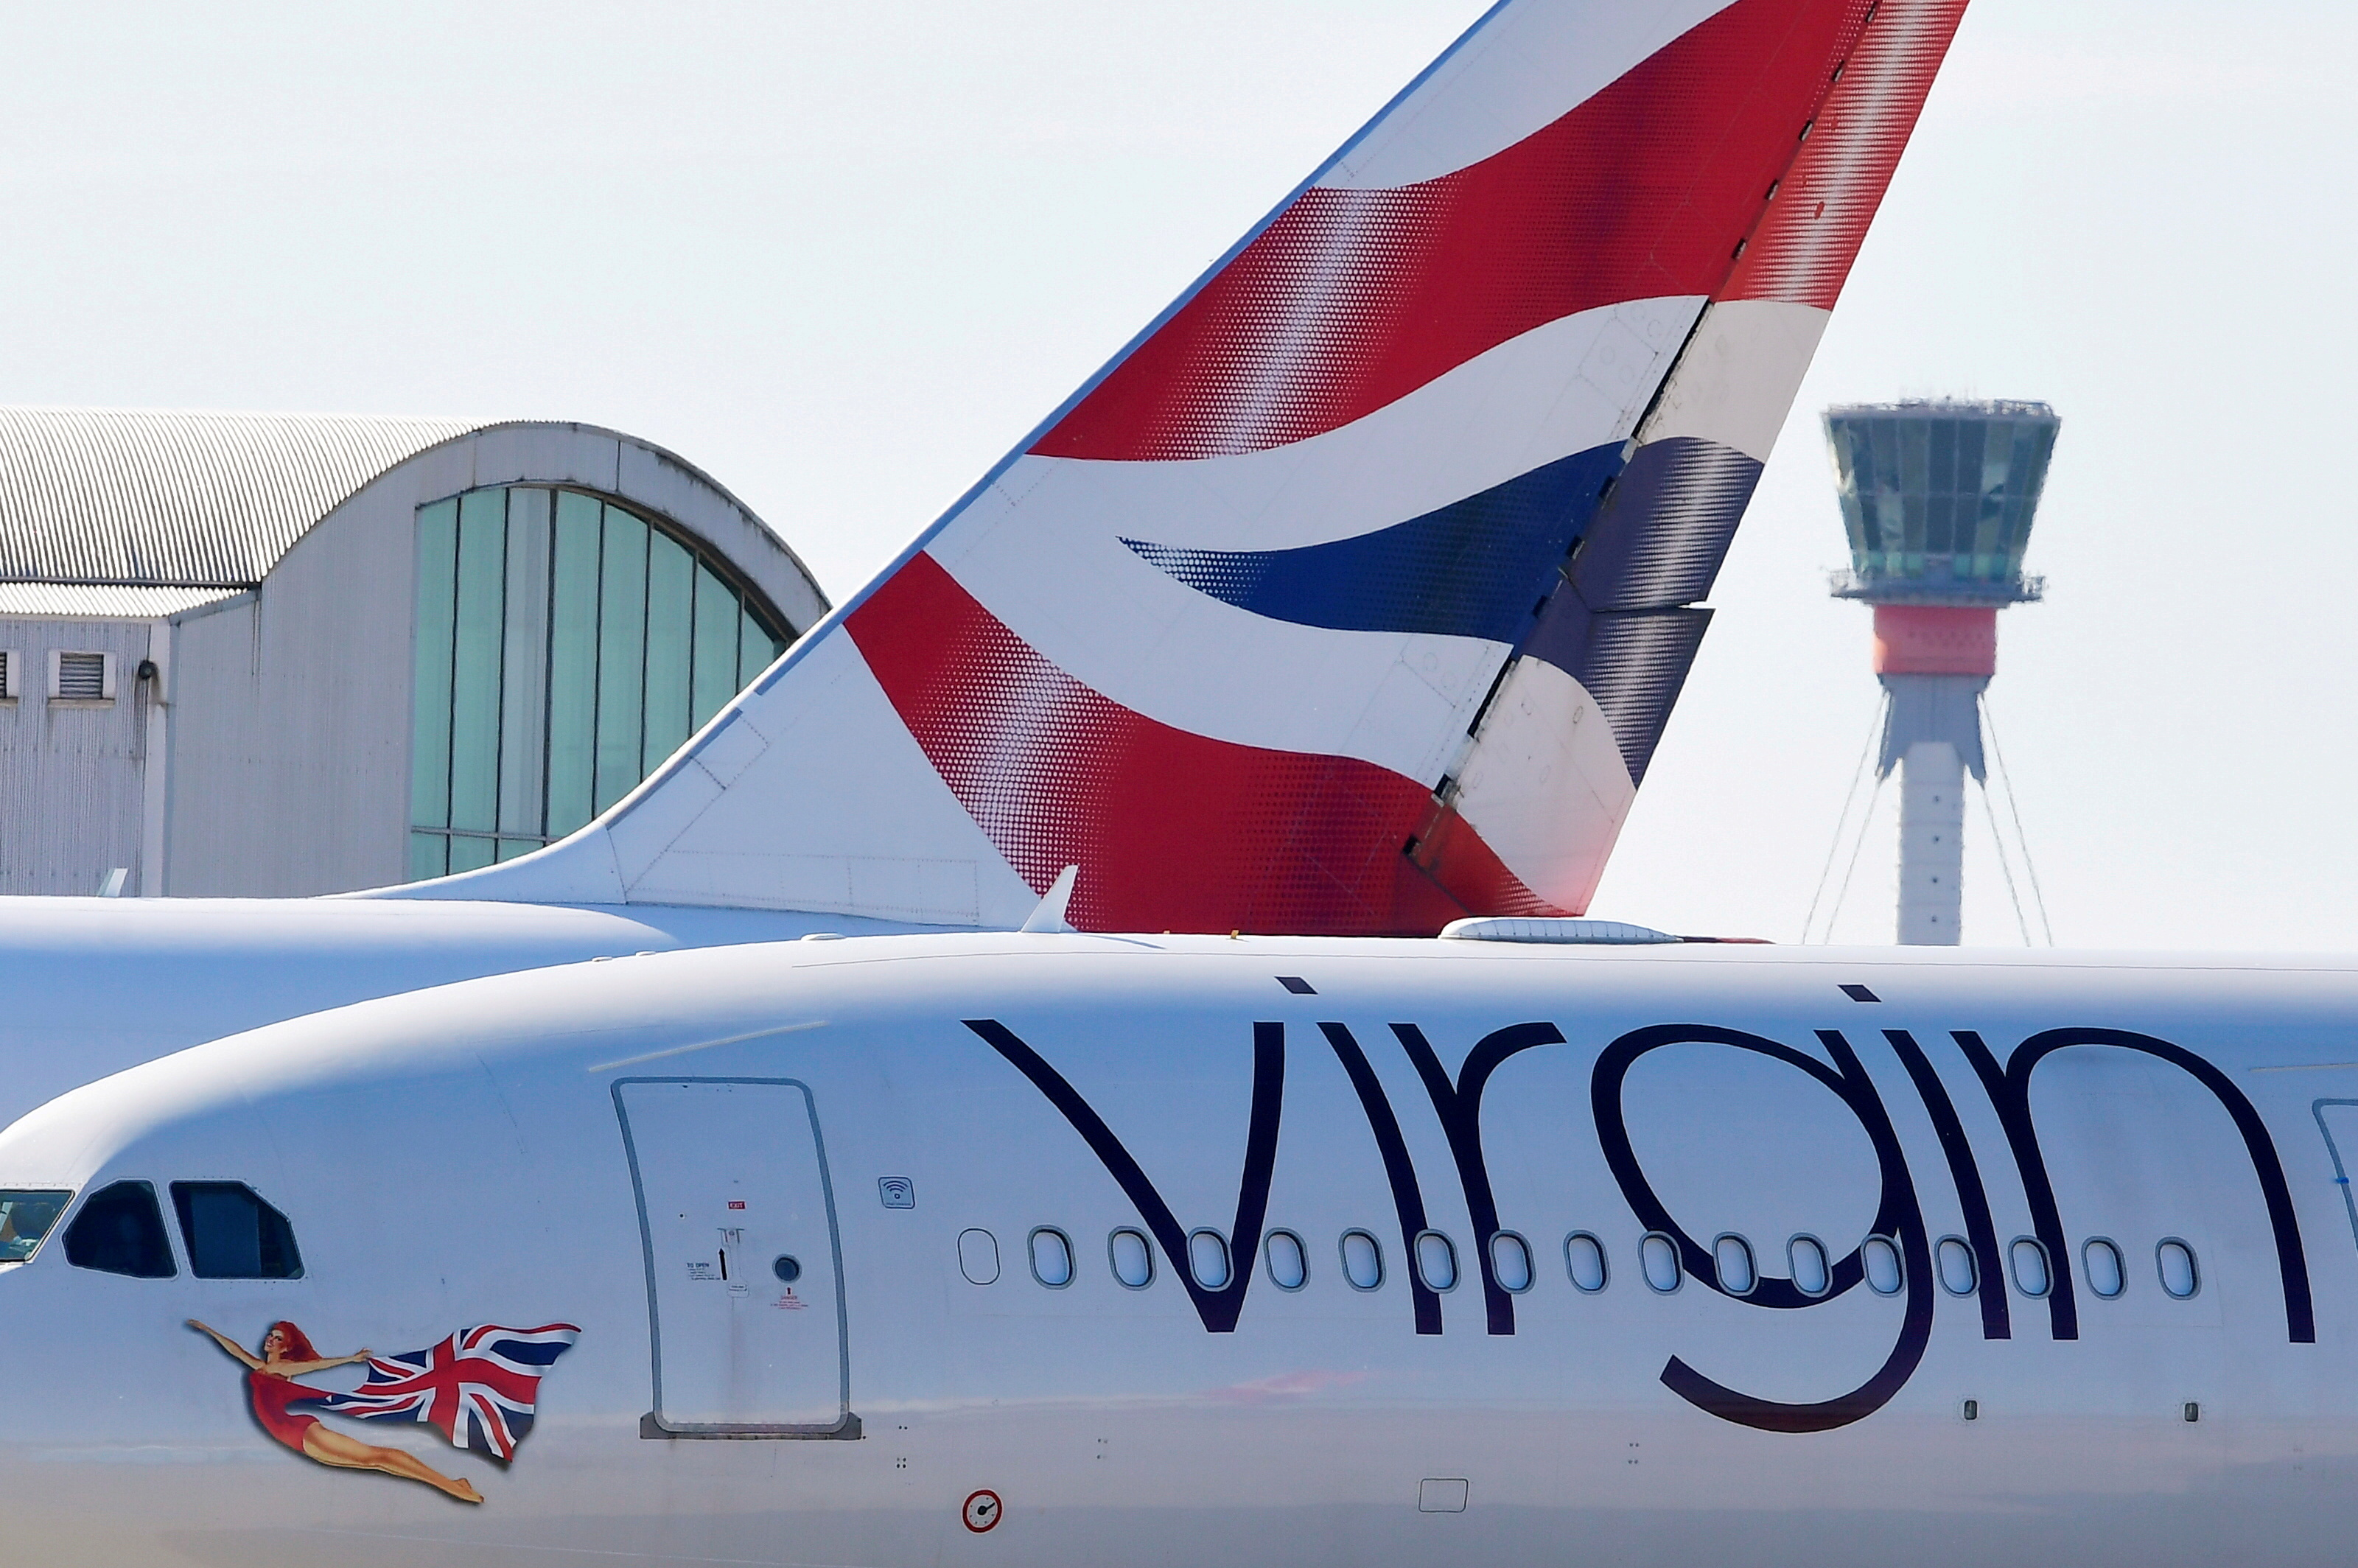 A British airways aeroplane tailfin and a Virgin Atlantic areoplane are seen with the control tower at Heathrow airport., London, Britain, May 5, 2020. REUTERS/Toby Melville